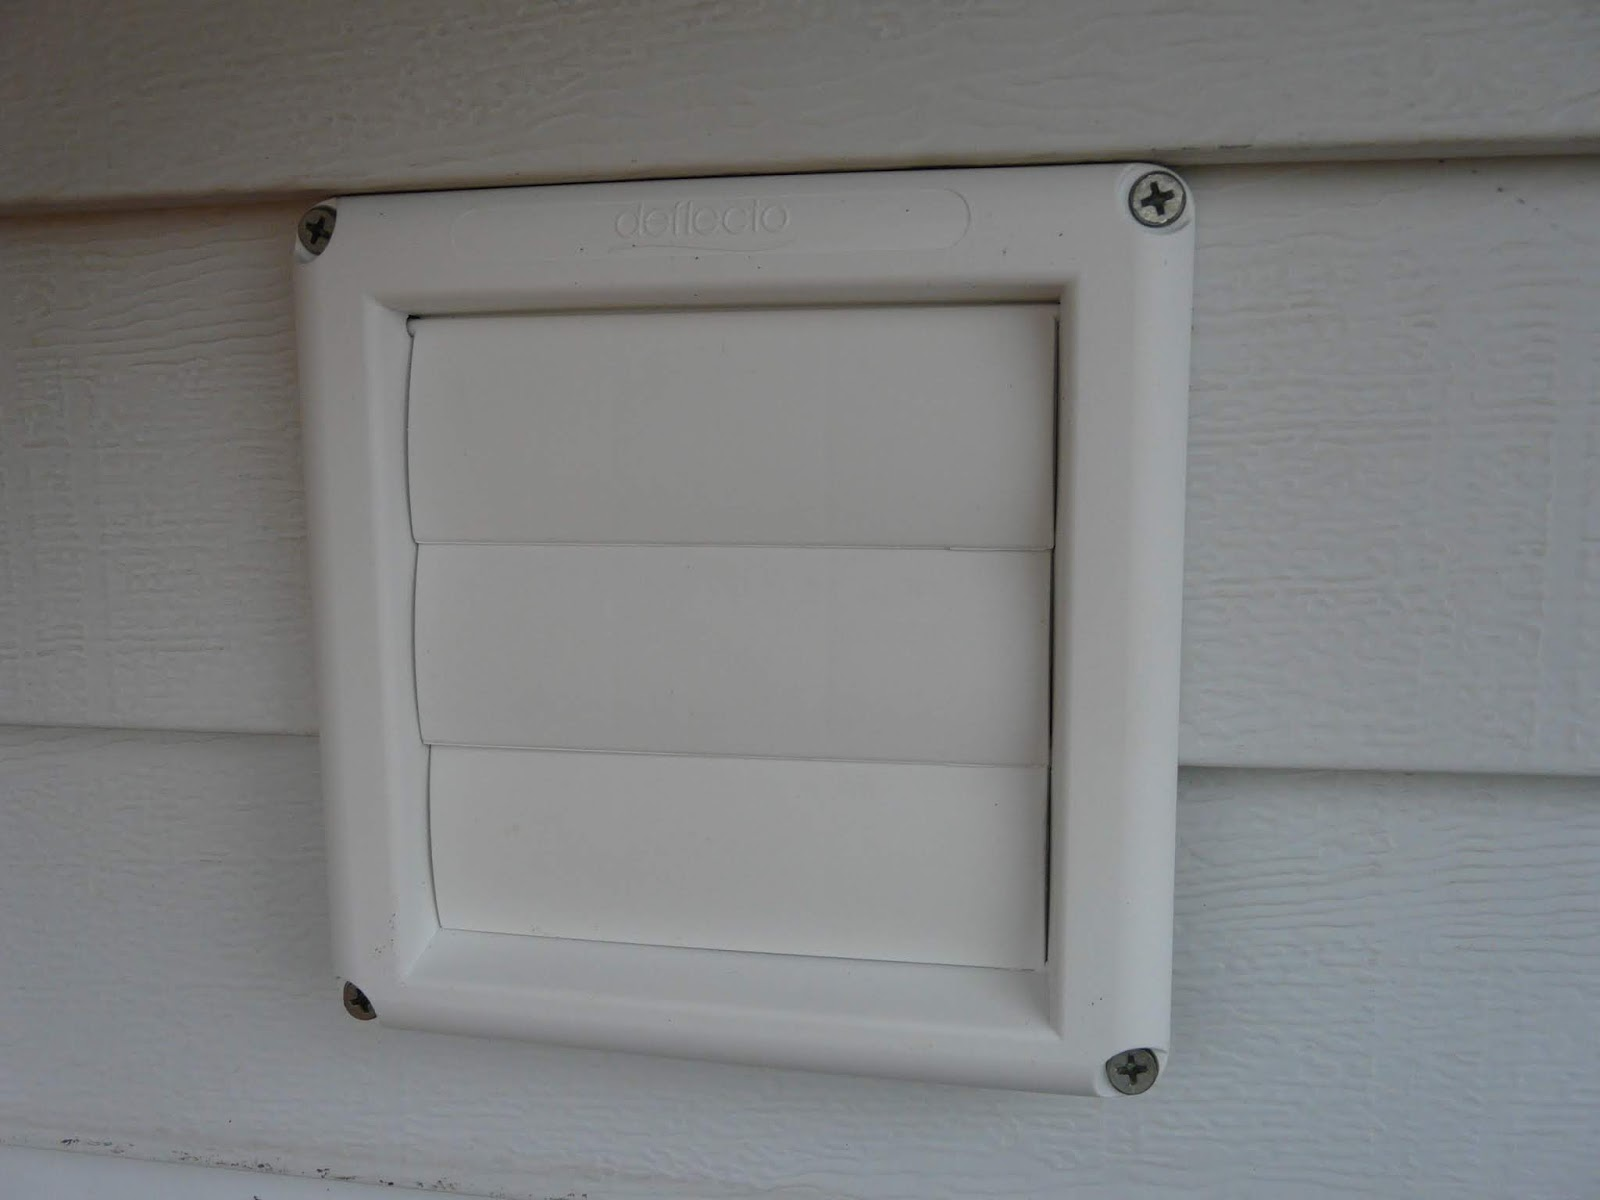 Outdoor Vent Covers >> The Secret Is Gratitude Replacing Outside Vent Covers